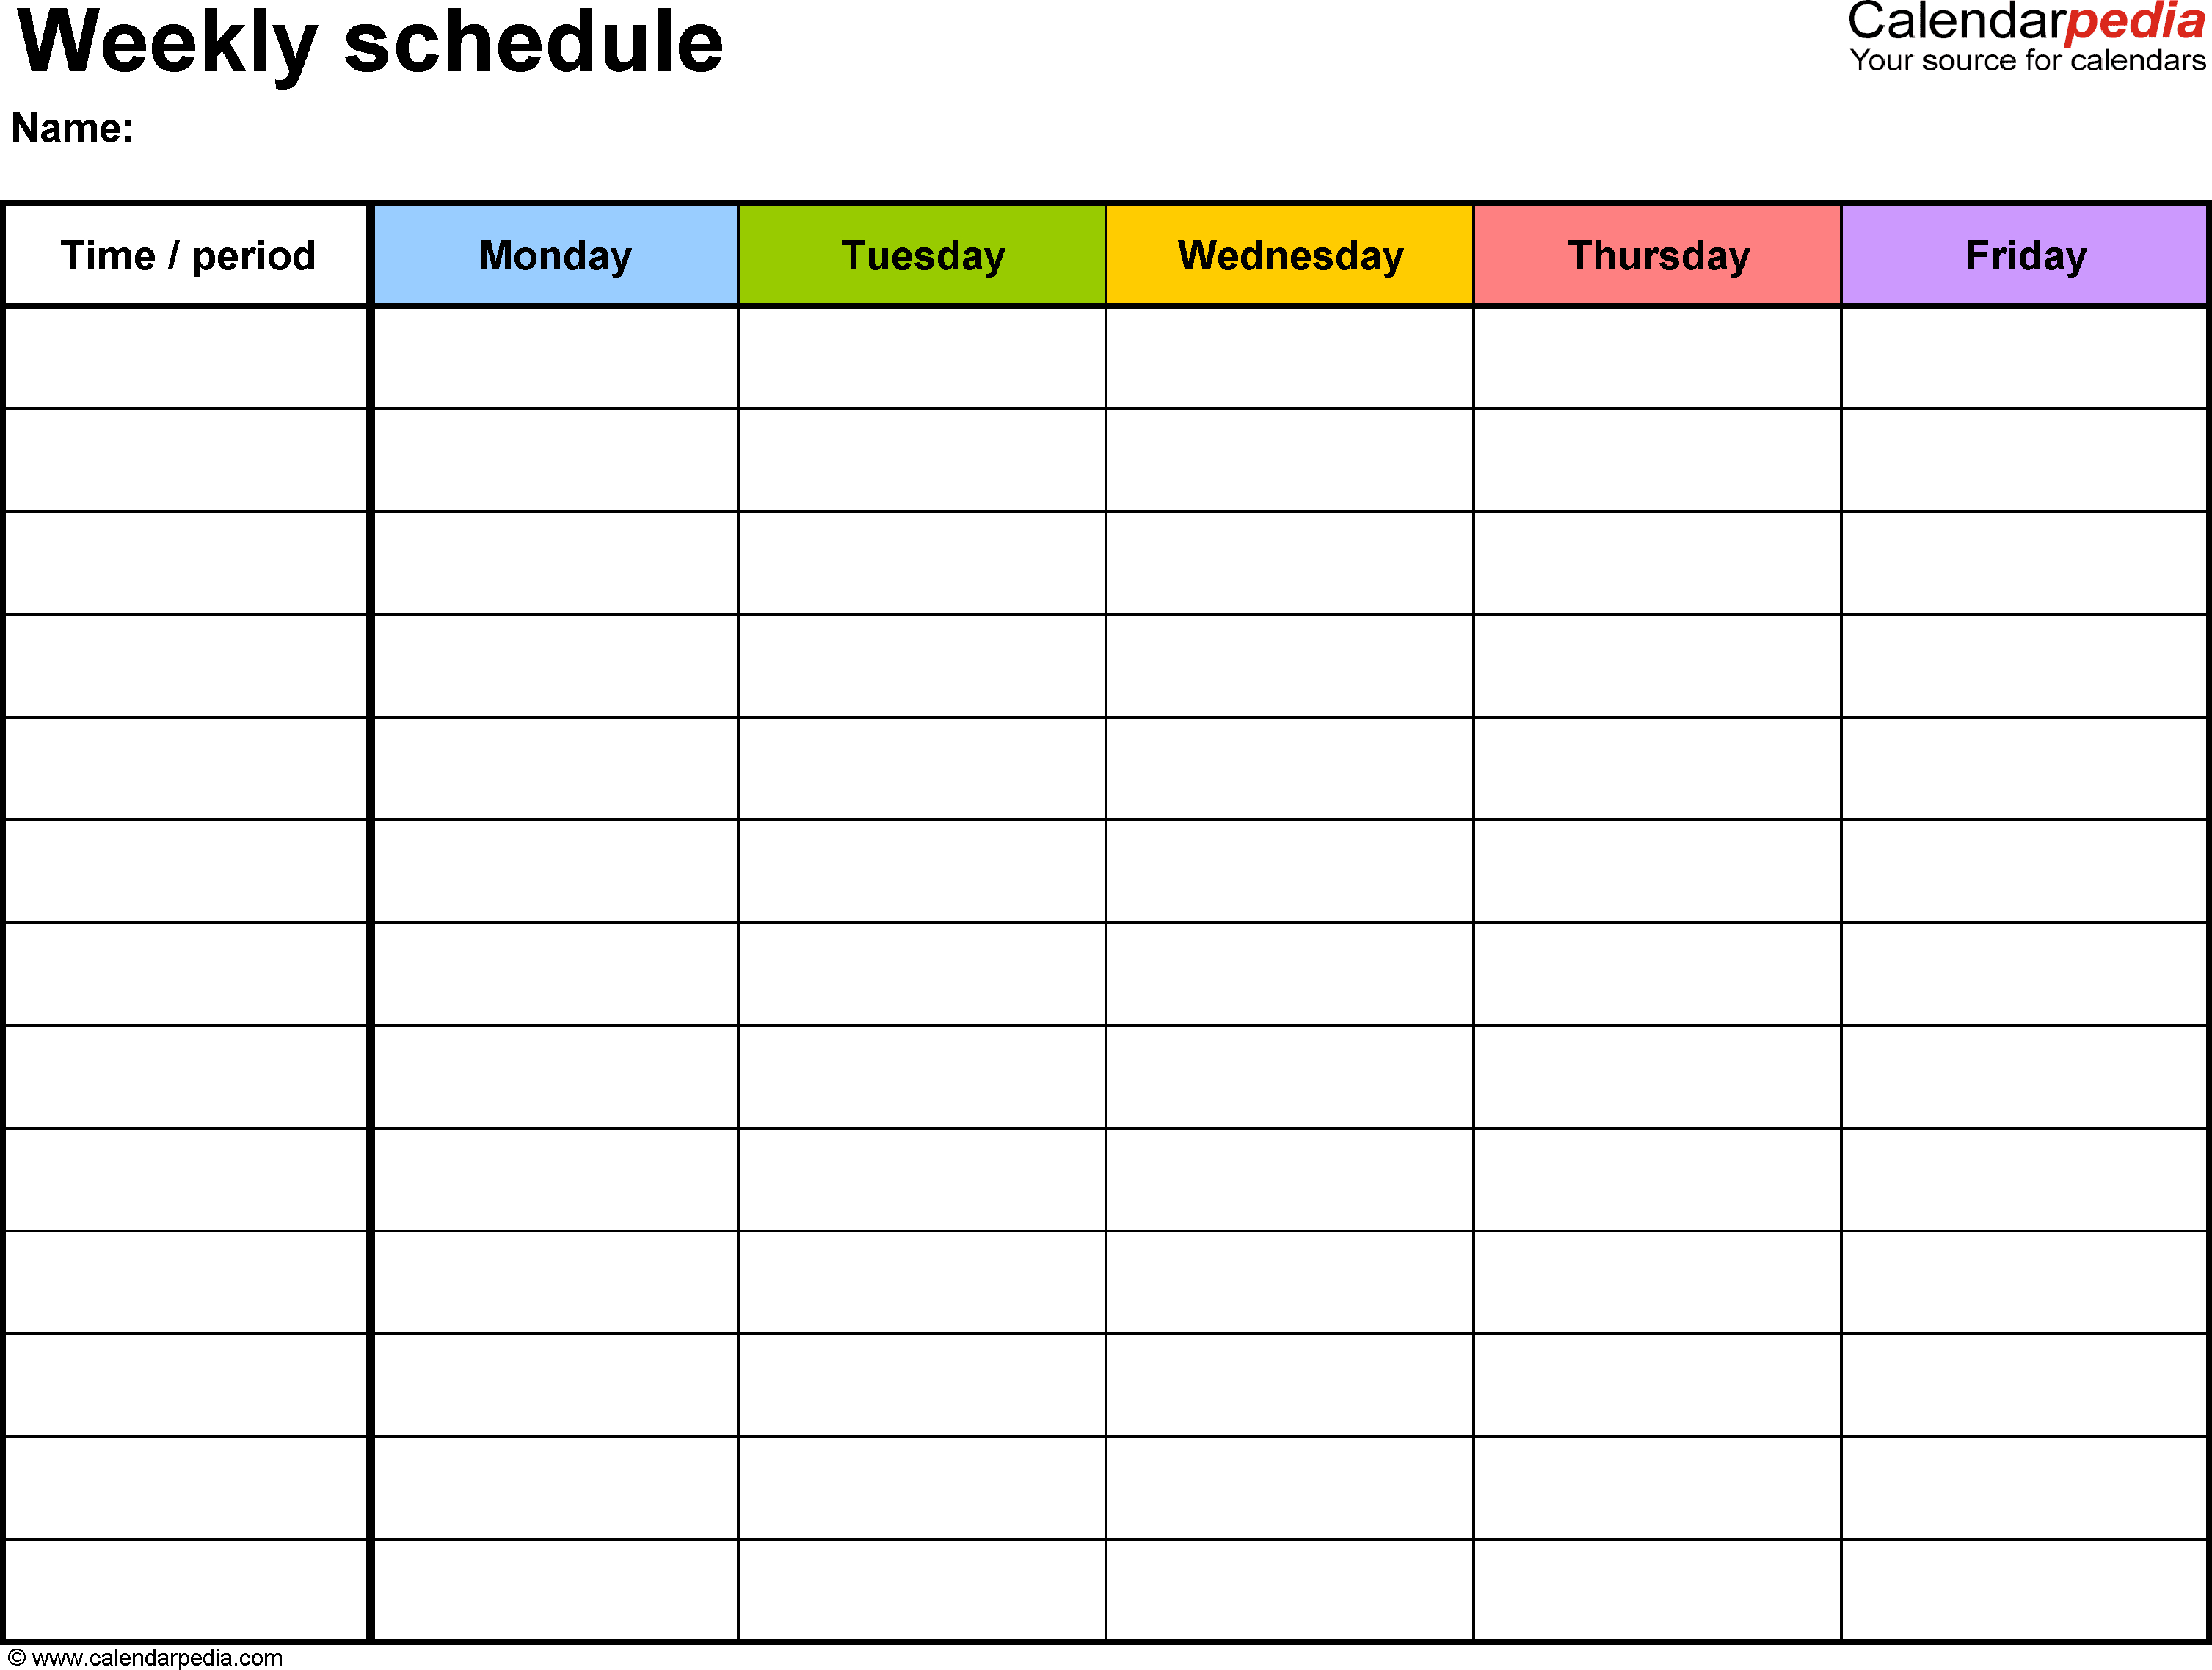 Free Weekly Schedule Templates For Word - 18 Templates intended for Blank Printable Calendar M-F